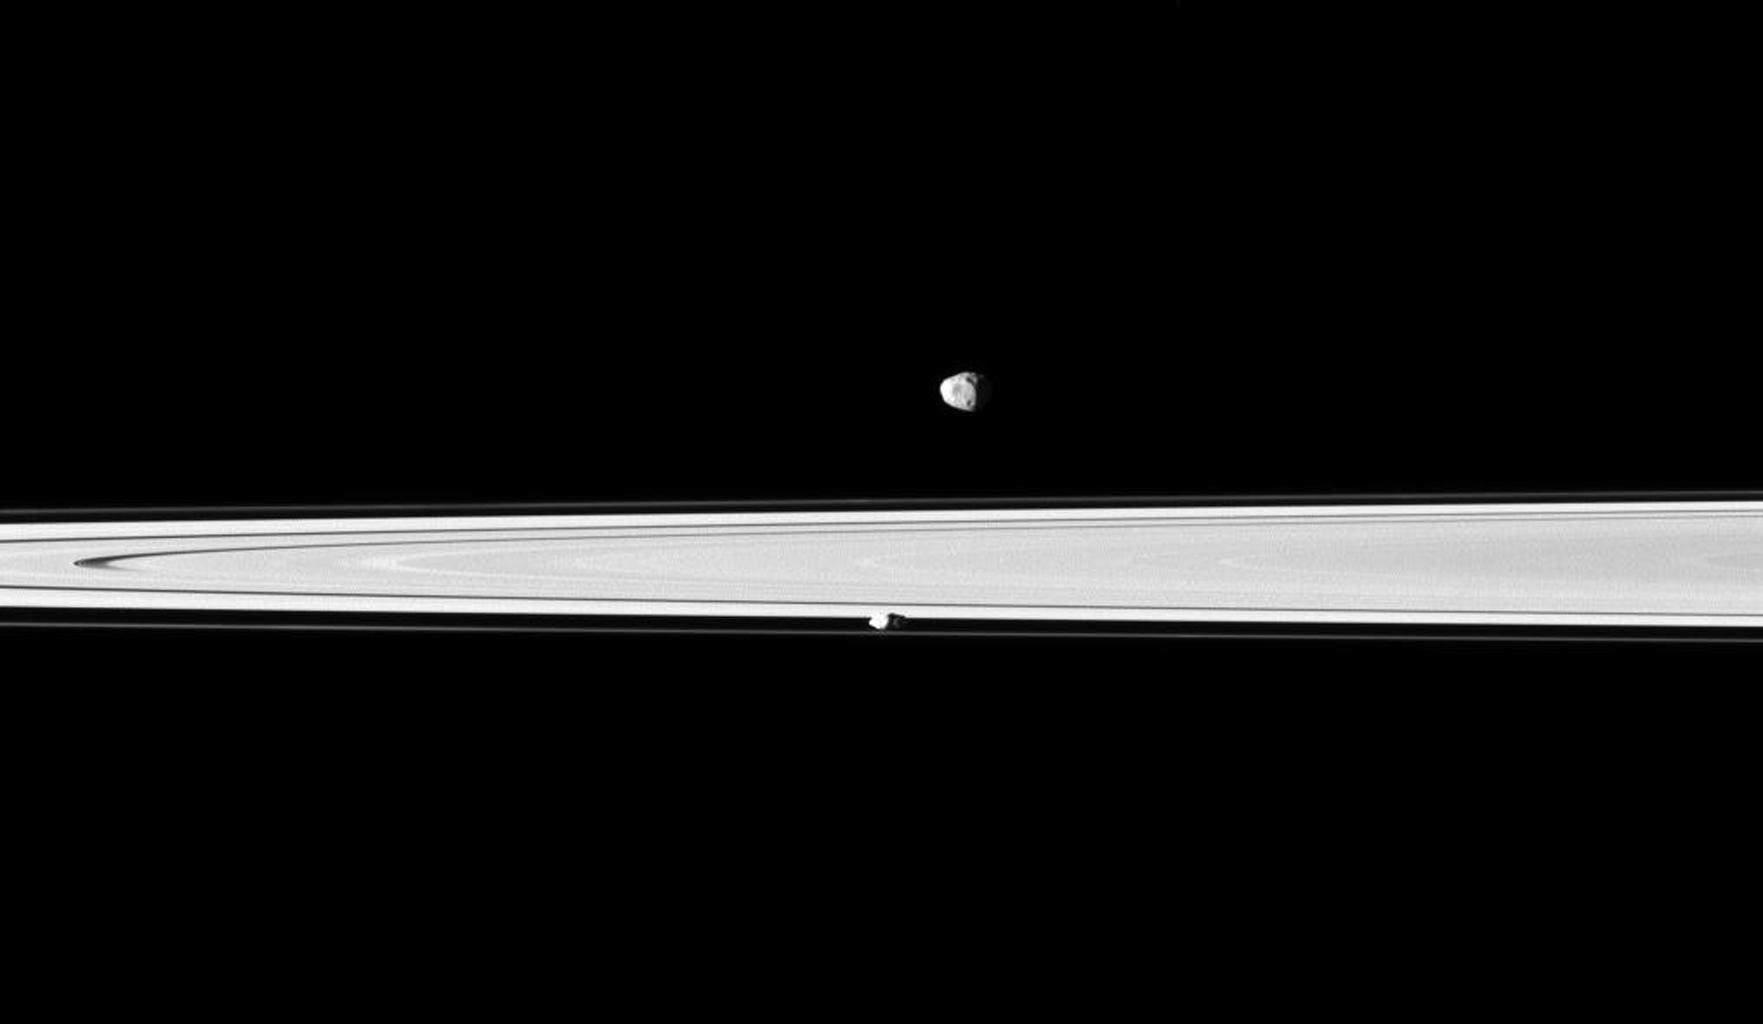 A pair of Saturn's small, icy satellites accompany the planet's rings in snapshot from NASA's Cassini spacecraft. The rings are between Janus and Prometheus.